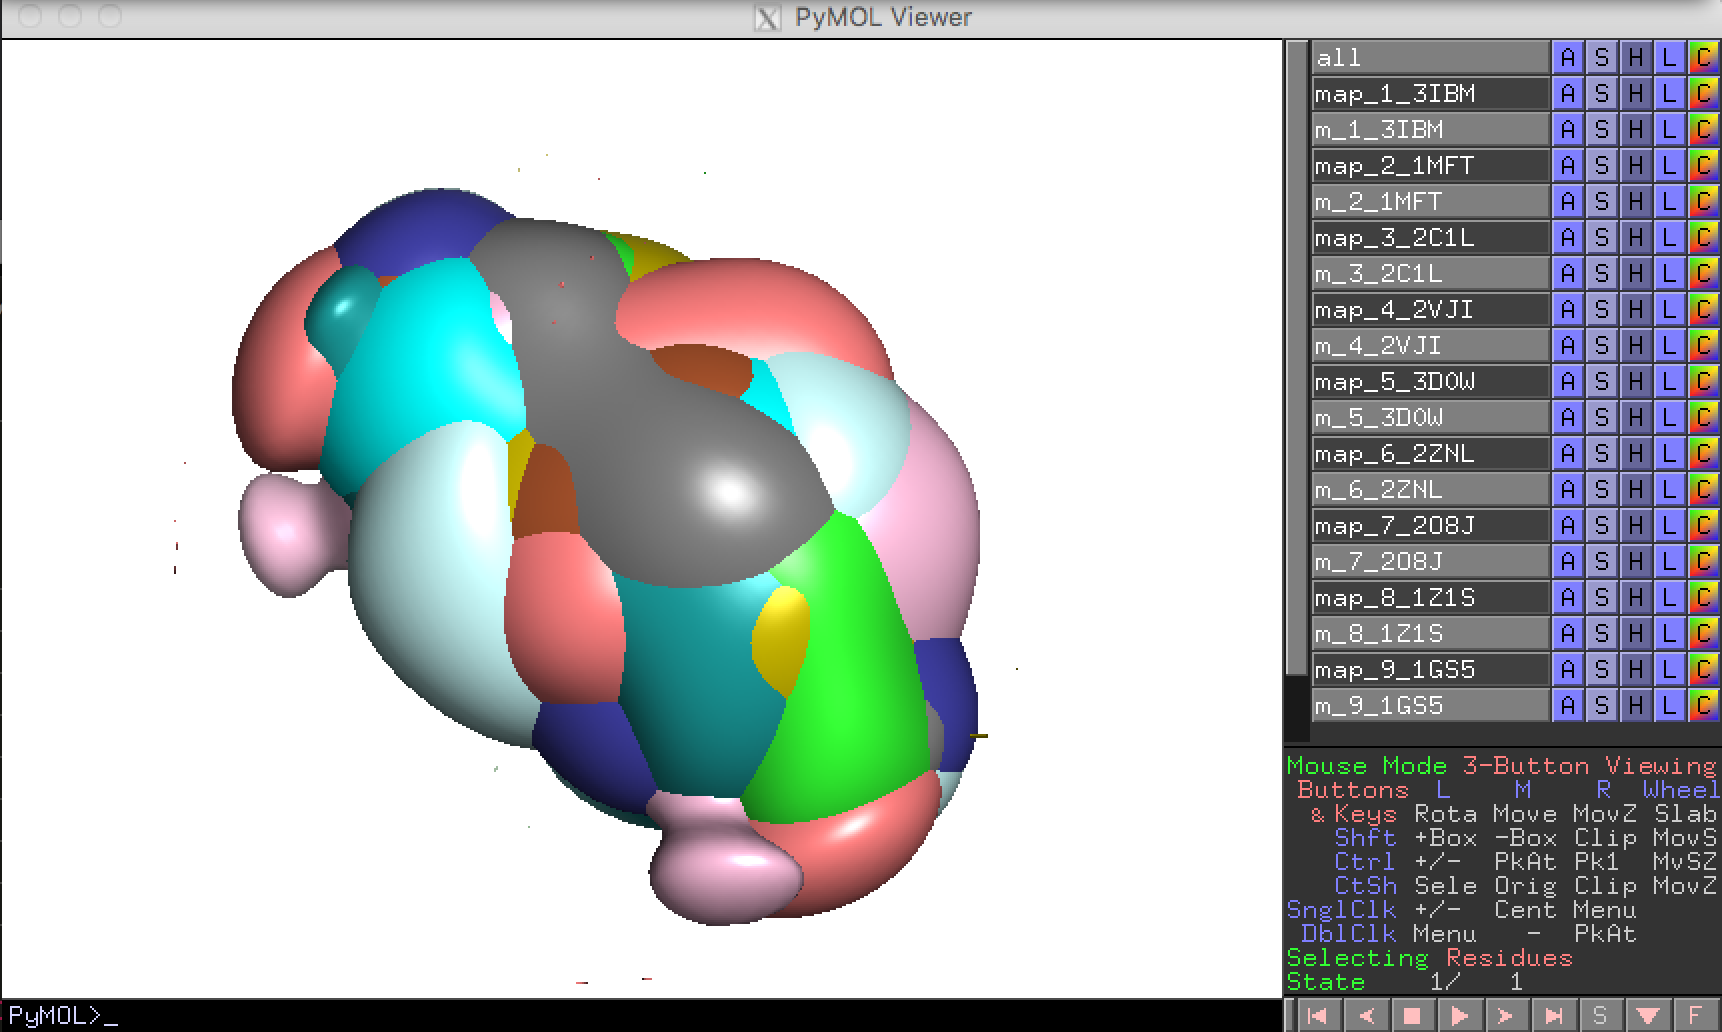 shapeup_result_pymol.png